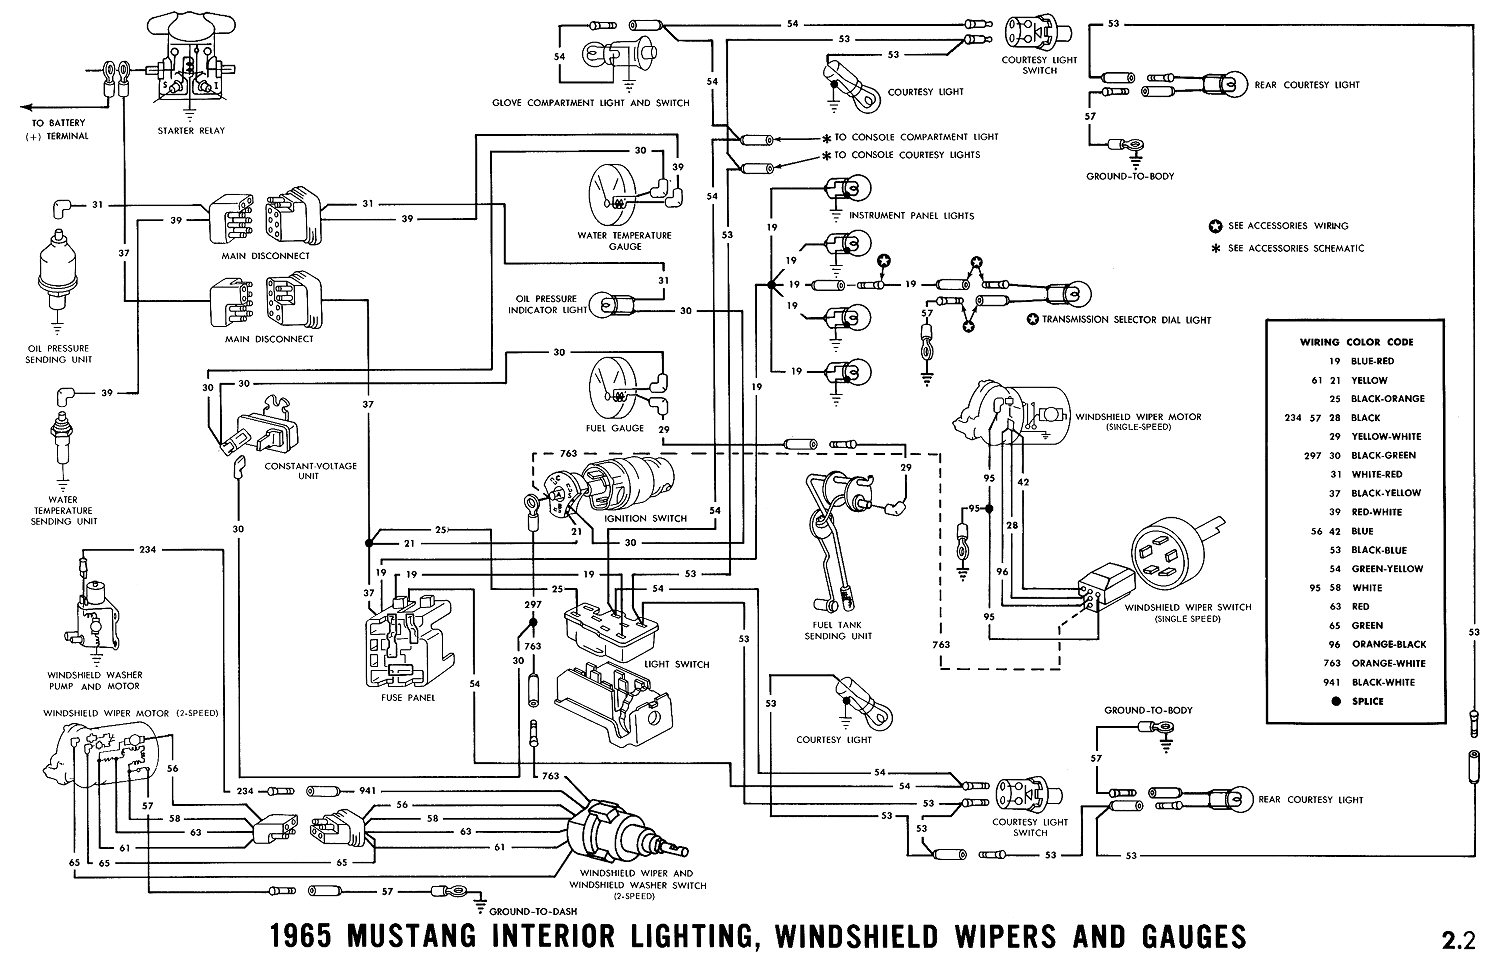 1965 Ford Starter Wiring Residential Electrical Symbols Motor Diagram Mustang Wire Diagrams Rh Boltsoft Net 2007 Truck Electronic Ignition